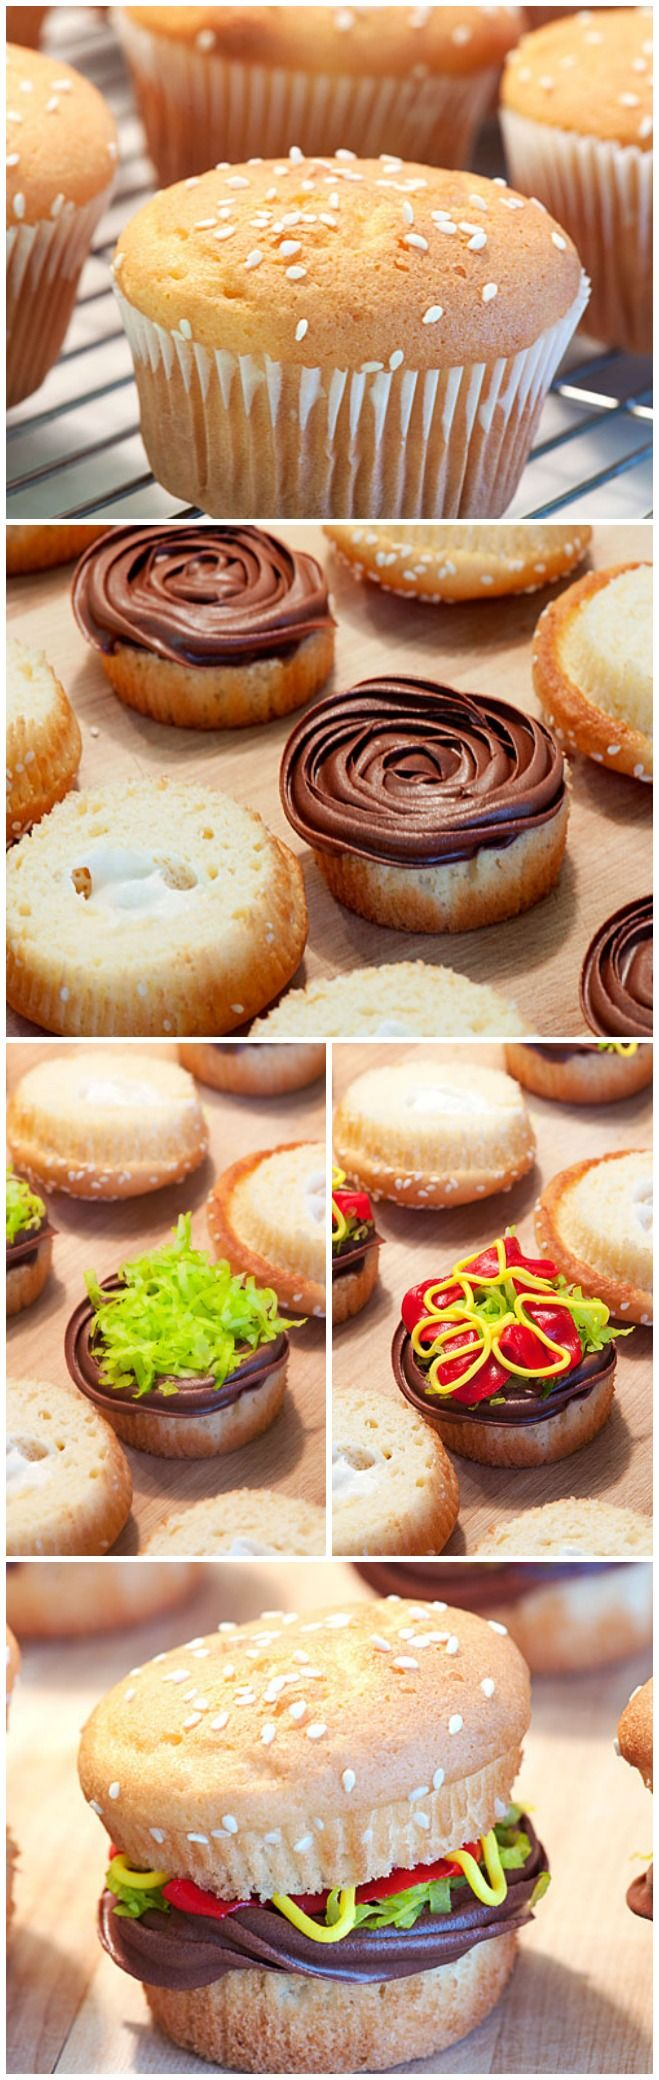 "Juicy Lucy"" Burger Cupcakes #MemorialDay: Chocolate Cupcakes ..."